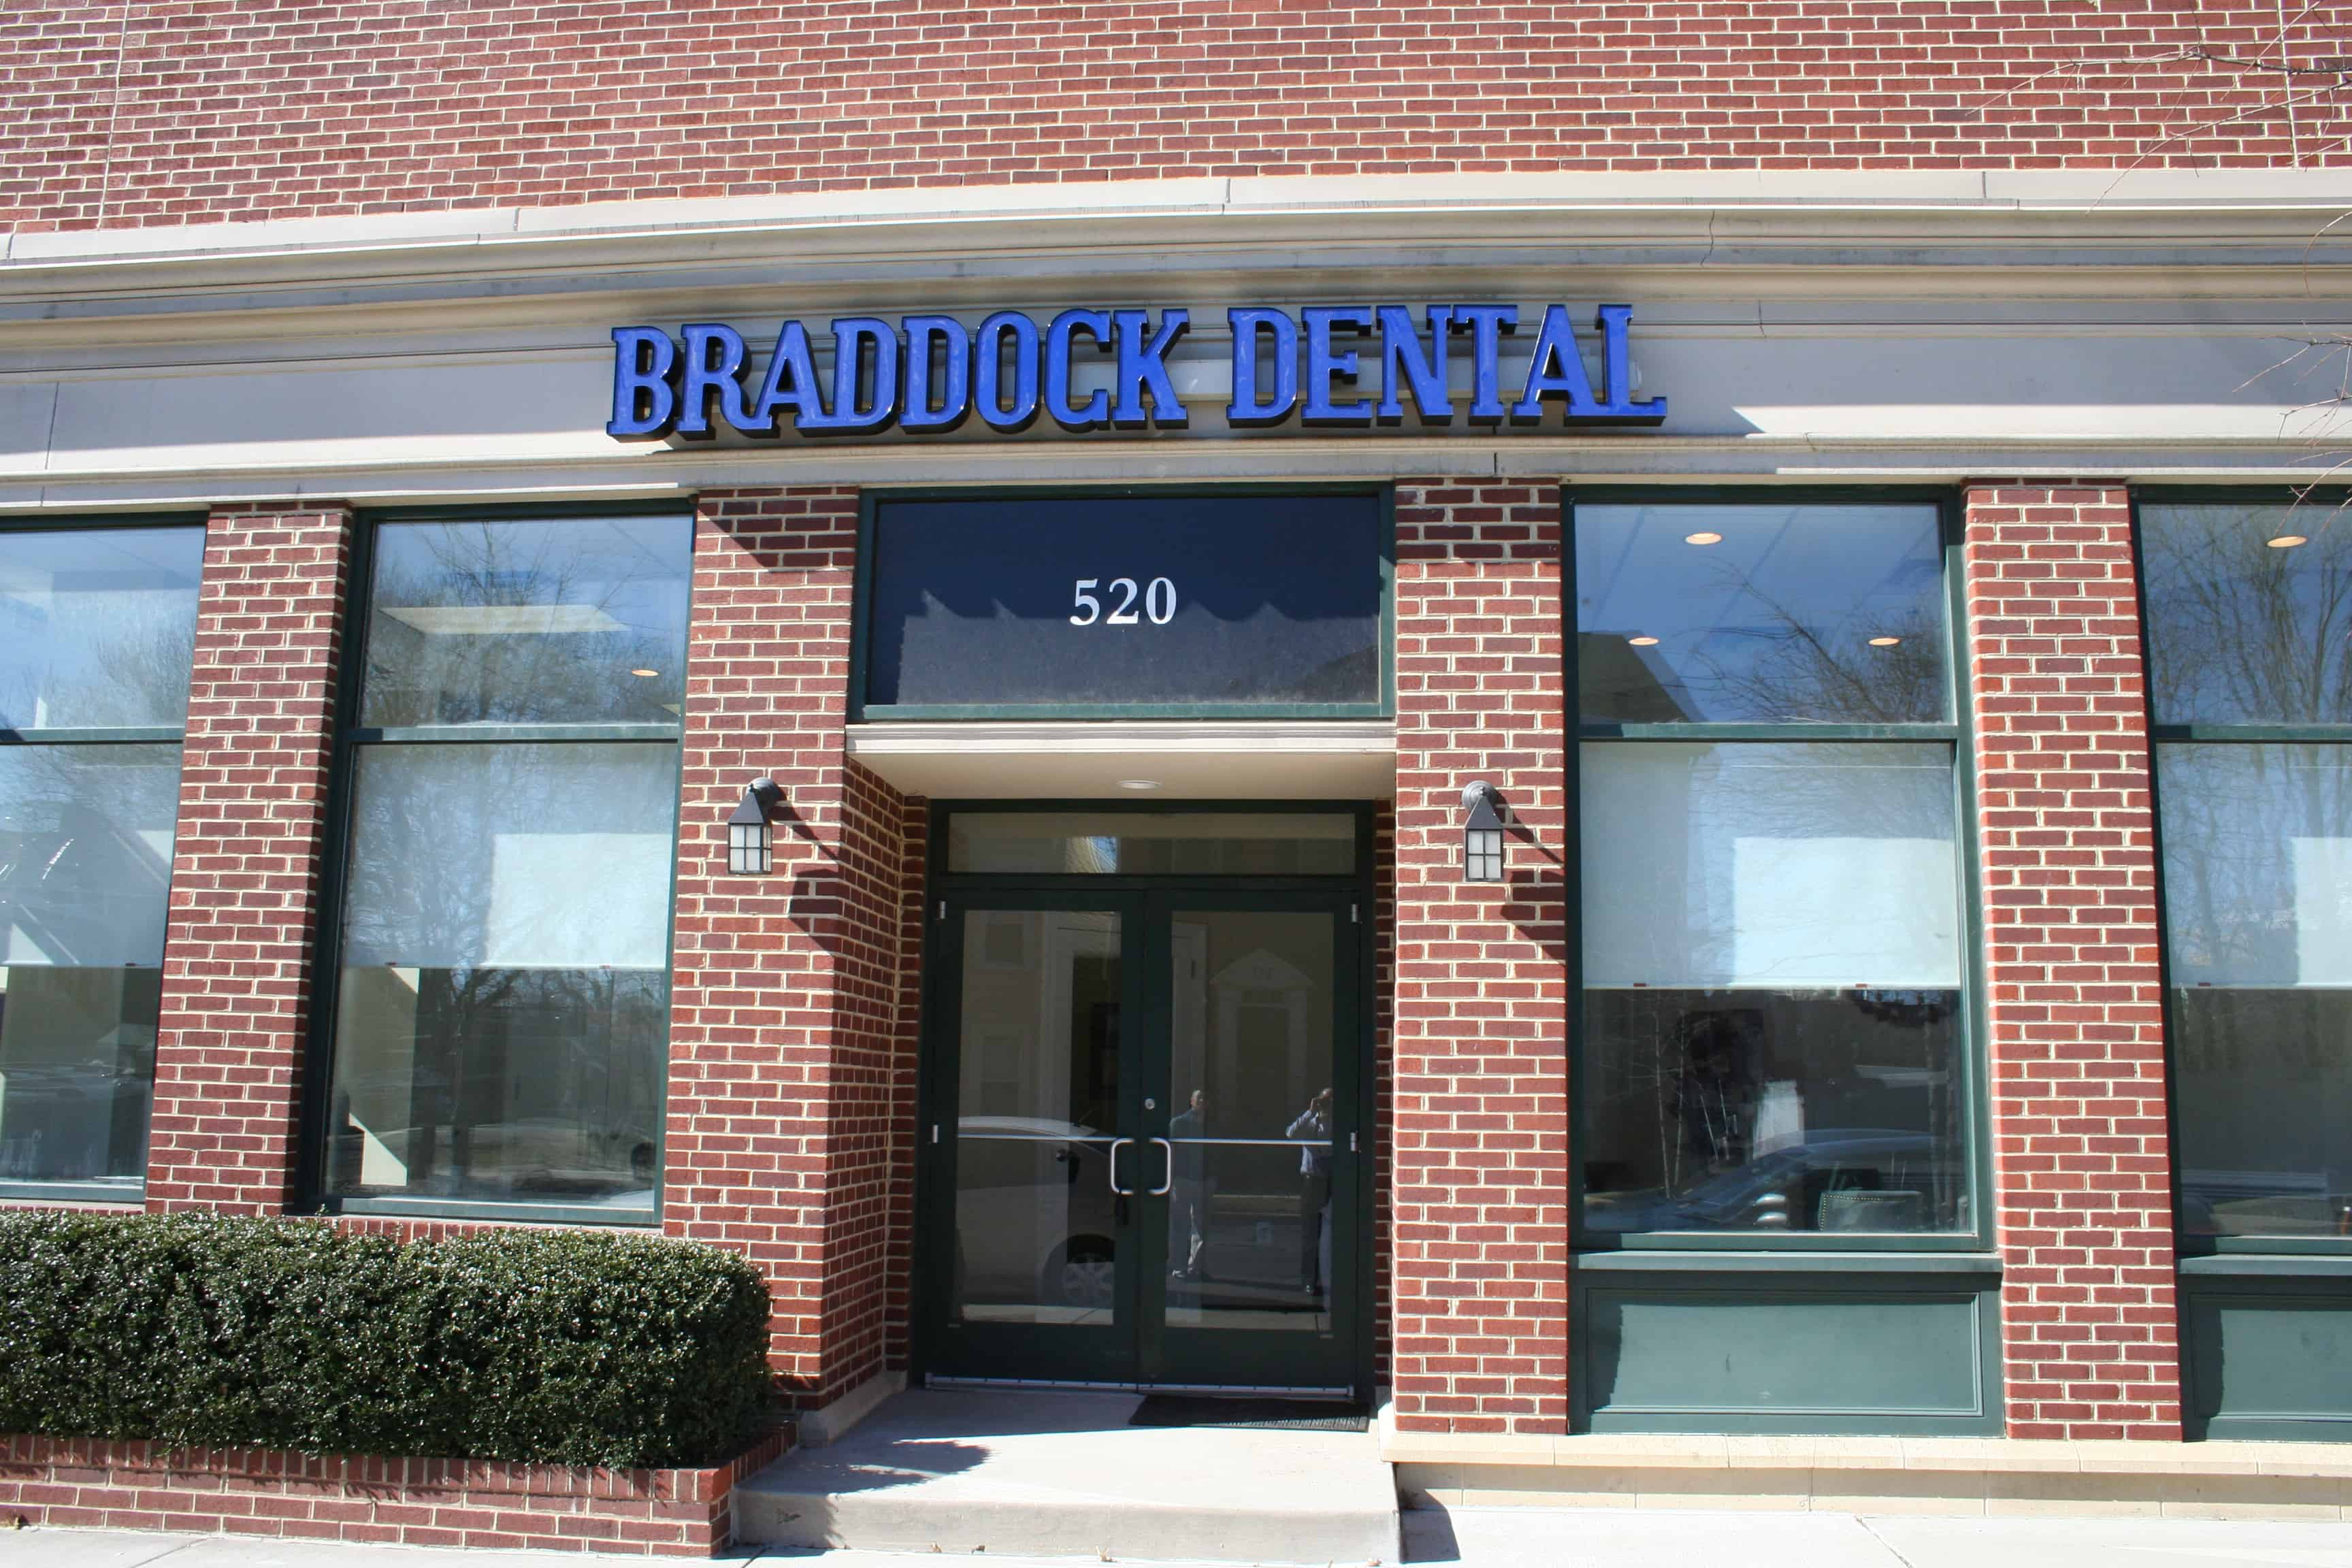 About Braddock Dental